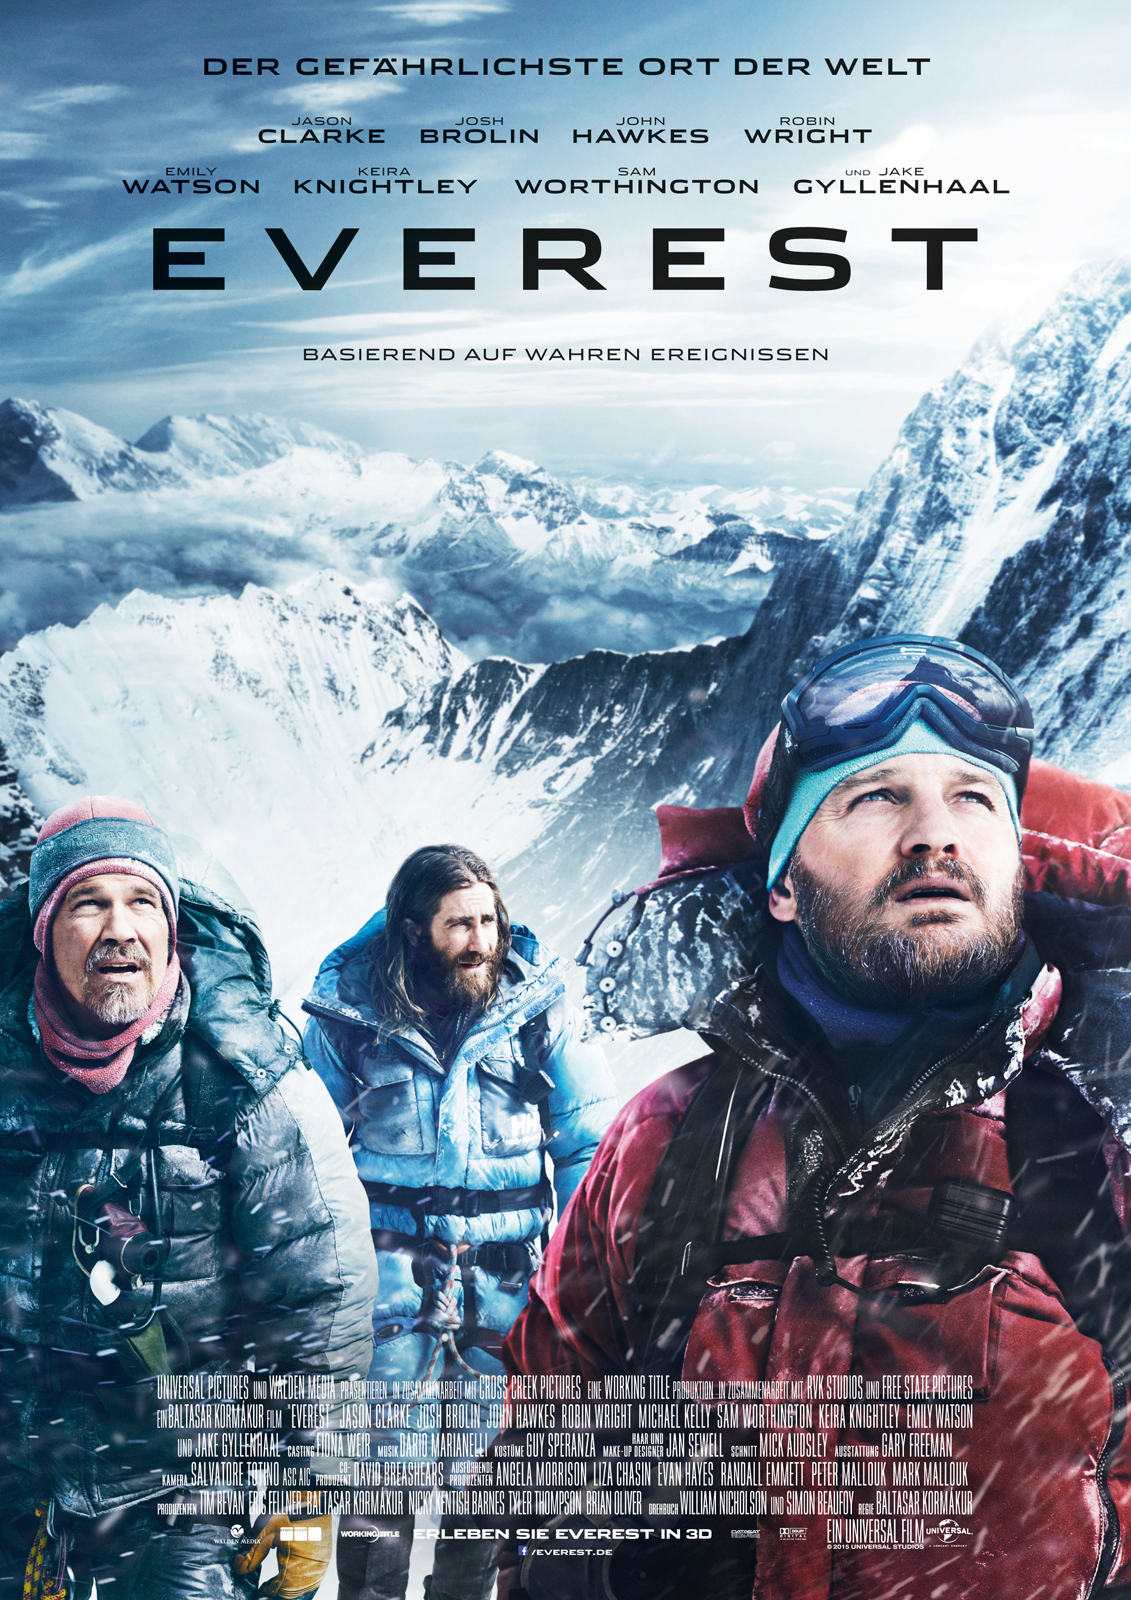 Everest Filmstarts